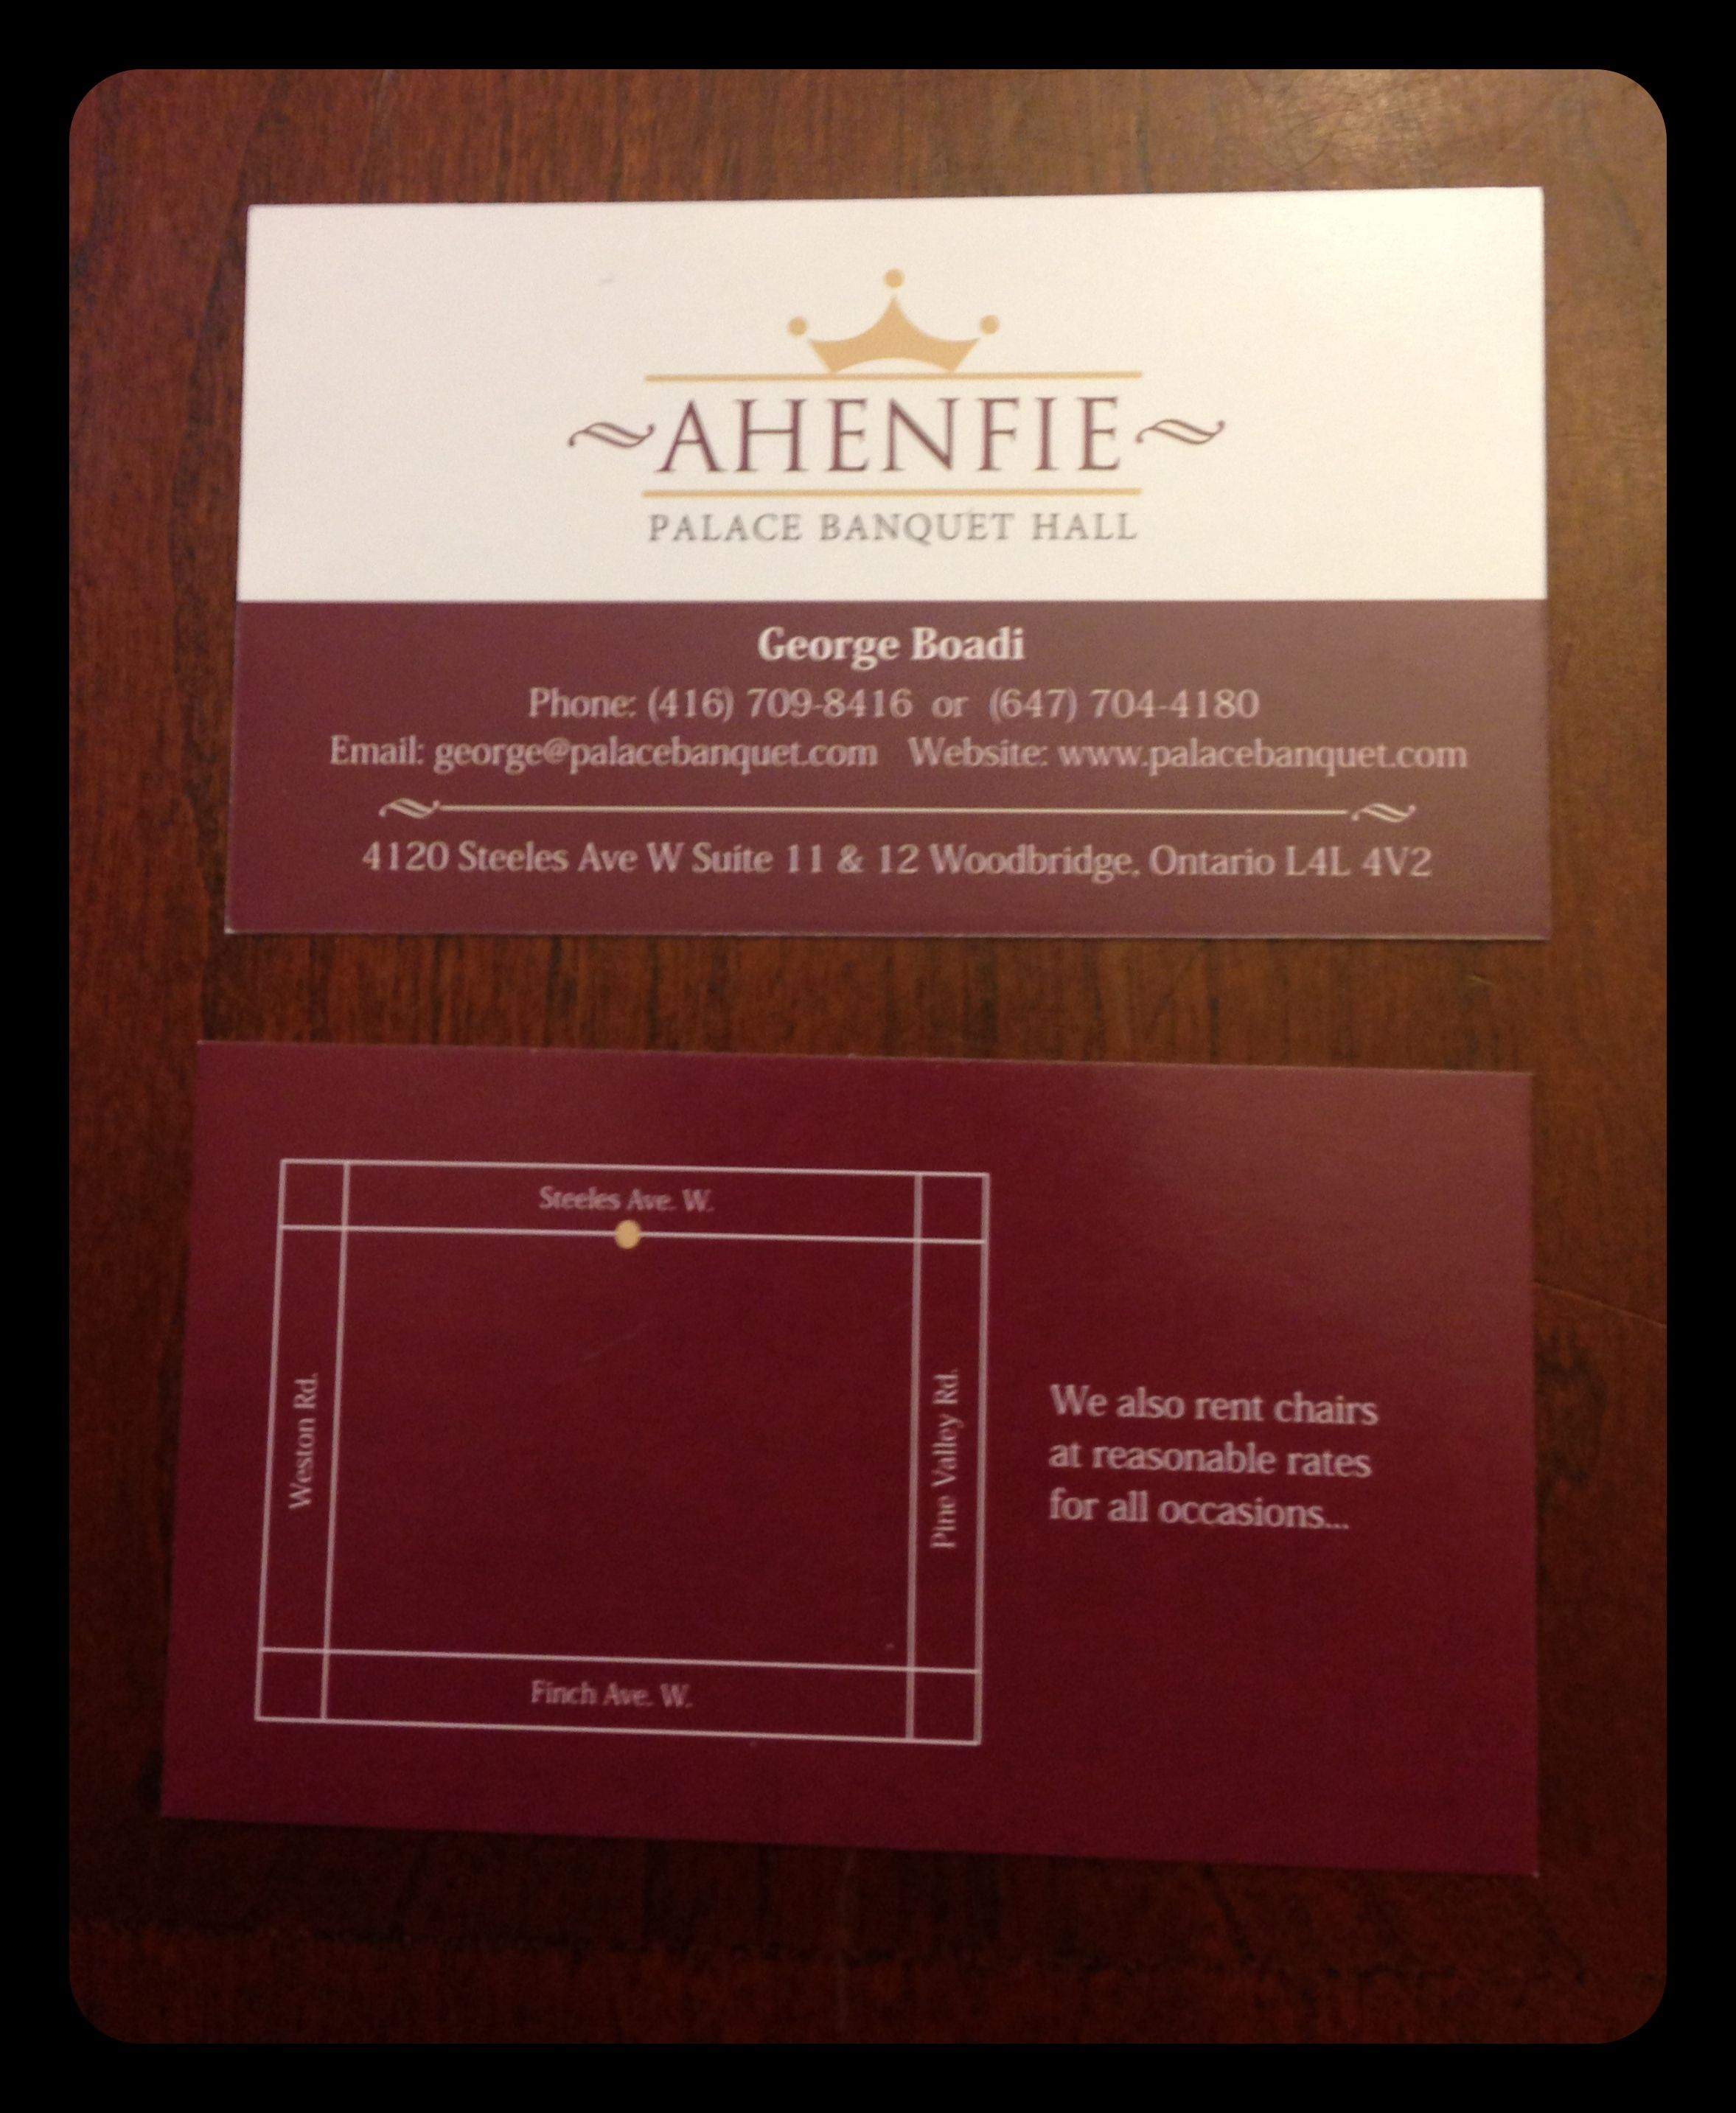 logo and business card design for ahenfie palace banquet hall we